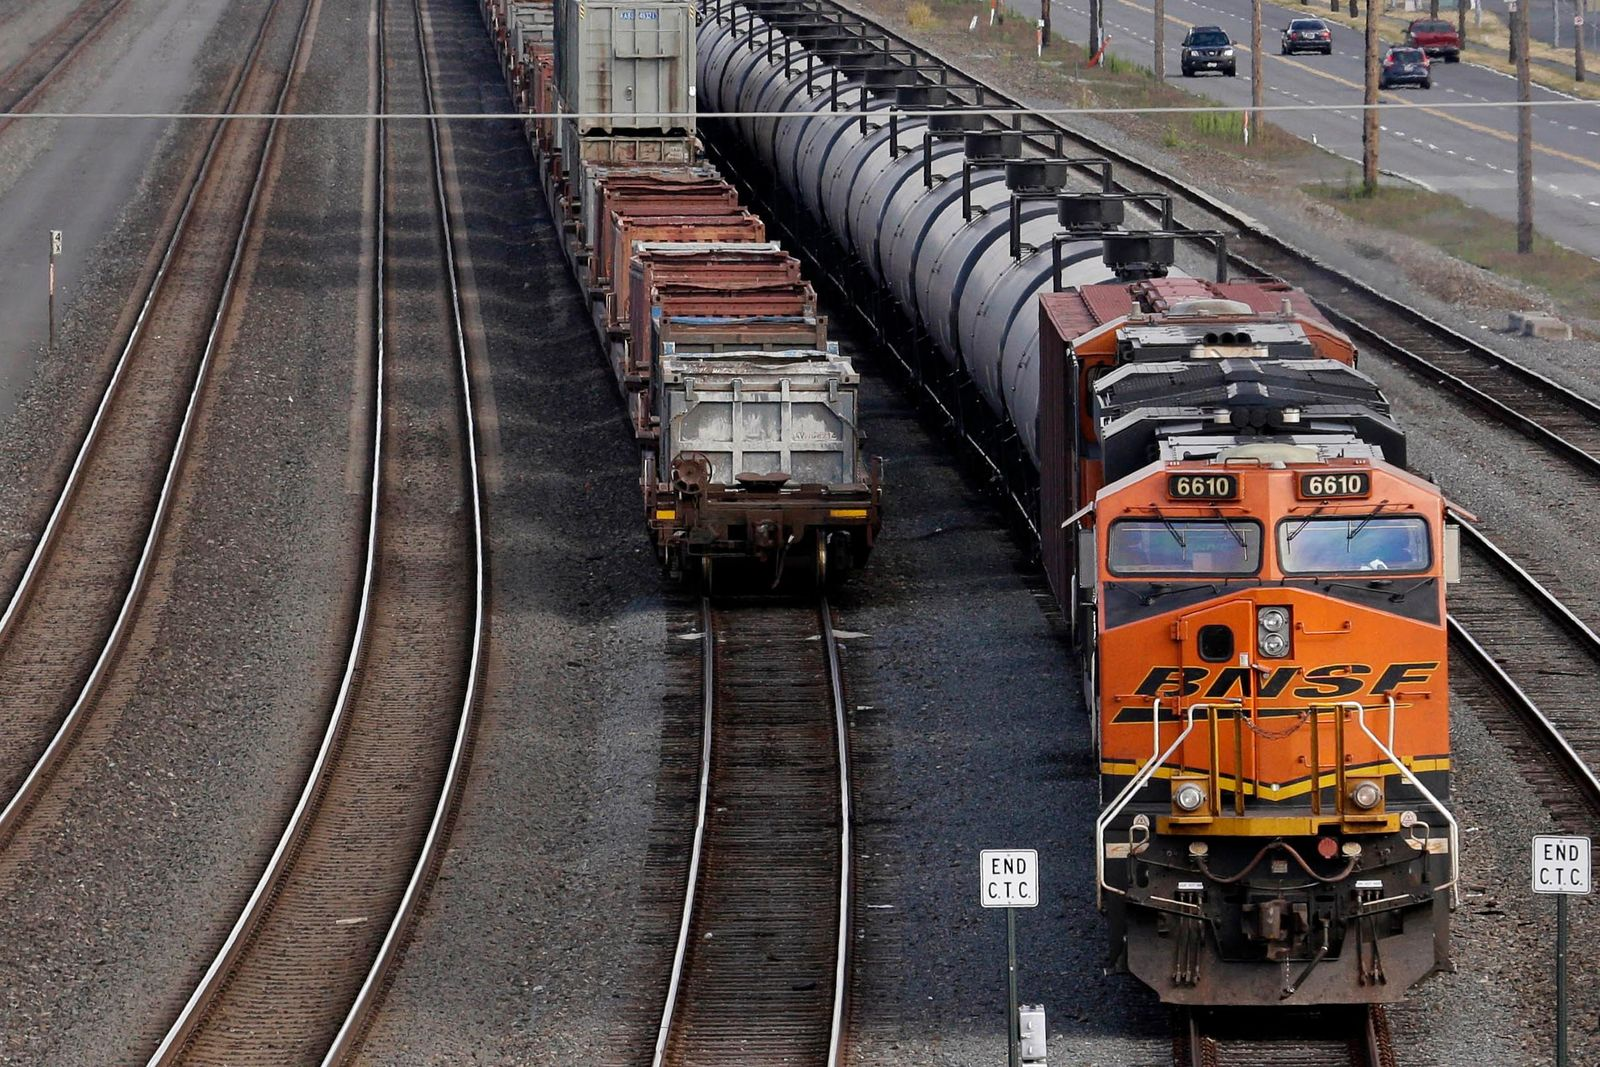 FILE - In this July 27, 2015, file photo, a BNSF Railway Company train is parked in Seattle. More than two dozen major companies ranging from Campbell Soup to Kia filed anti-trust lawsuits on Sept. 30, 2019 against the nation's four largest railway companies, contending the railroads had a price-fixing scheme to illegally boost profits.(AP Photo/Elaine Thompson, File)